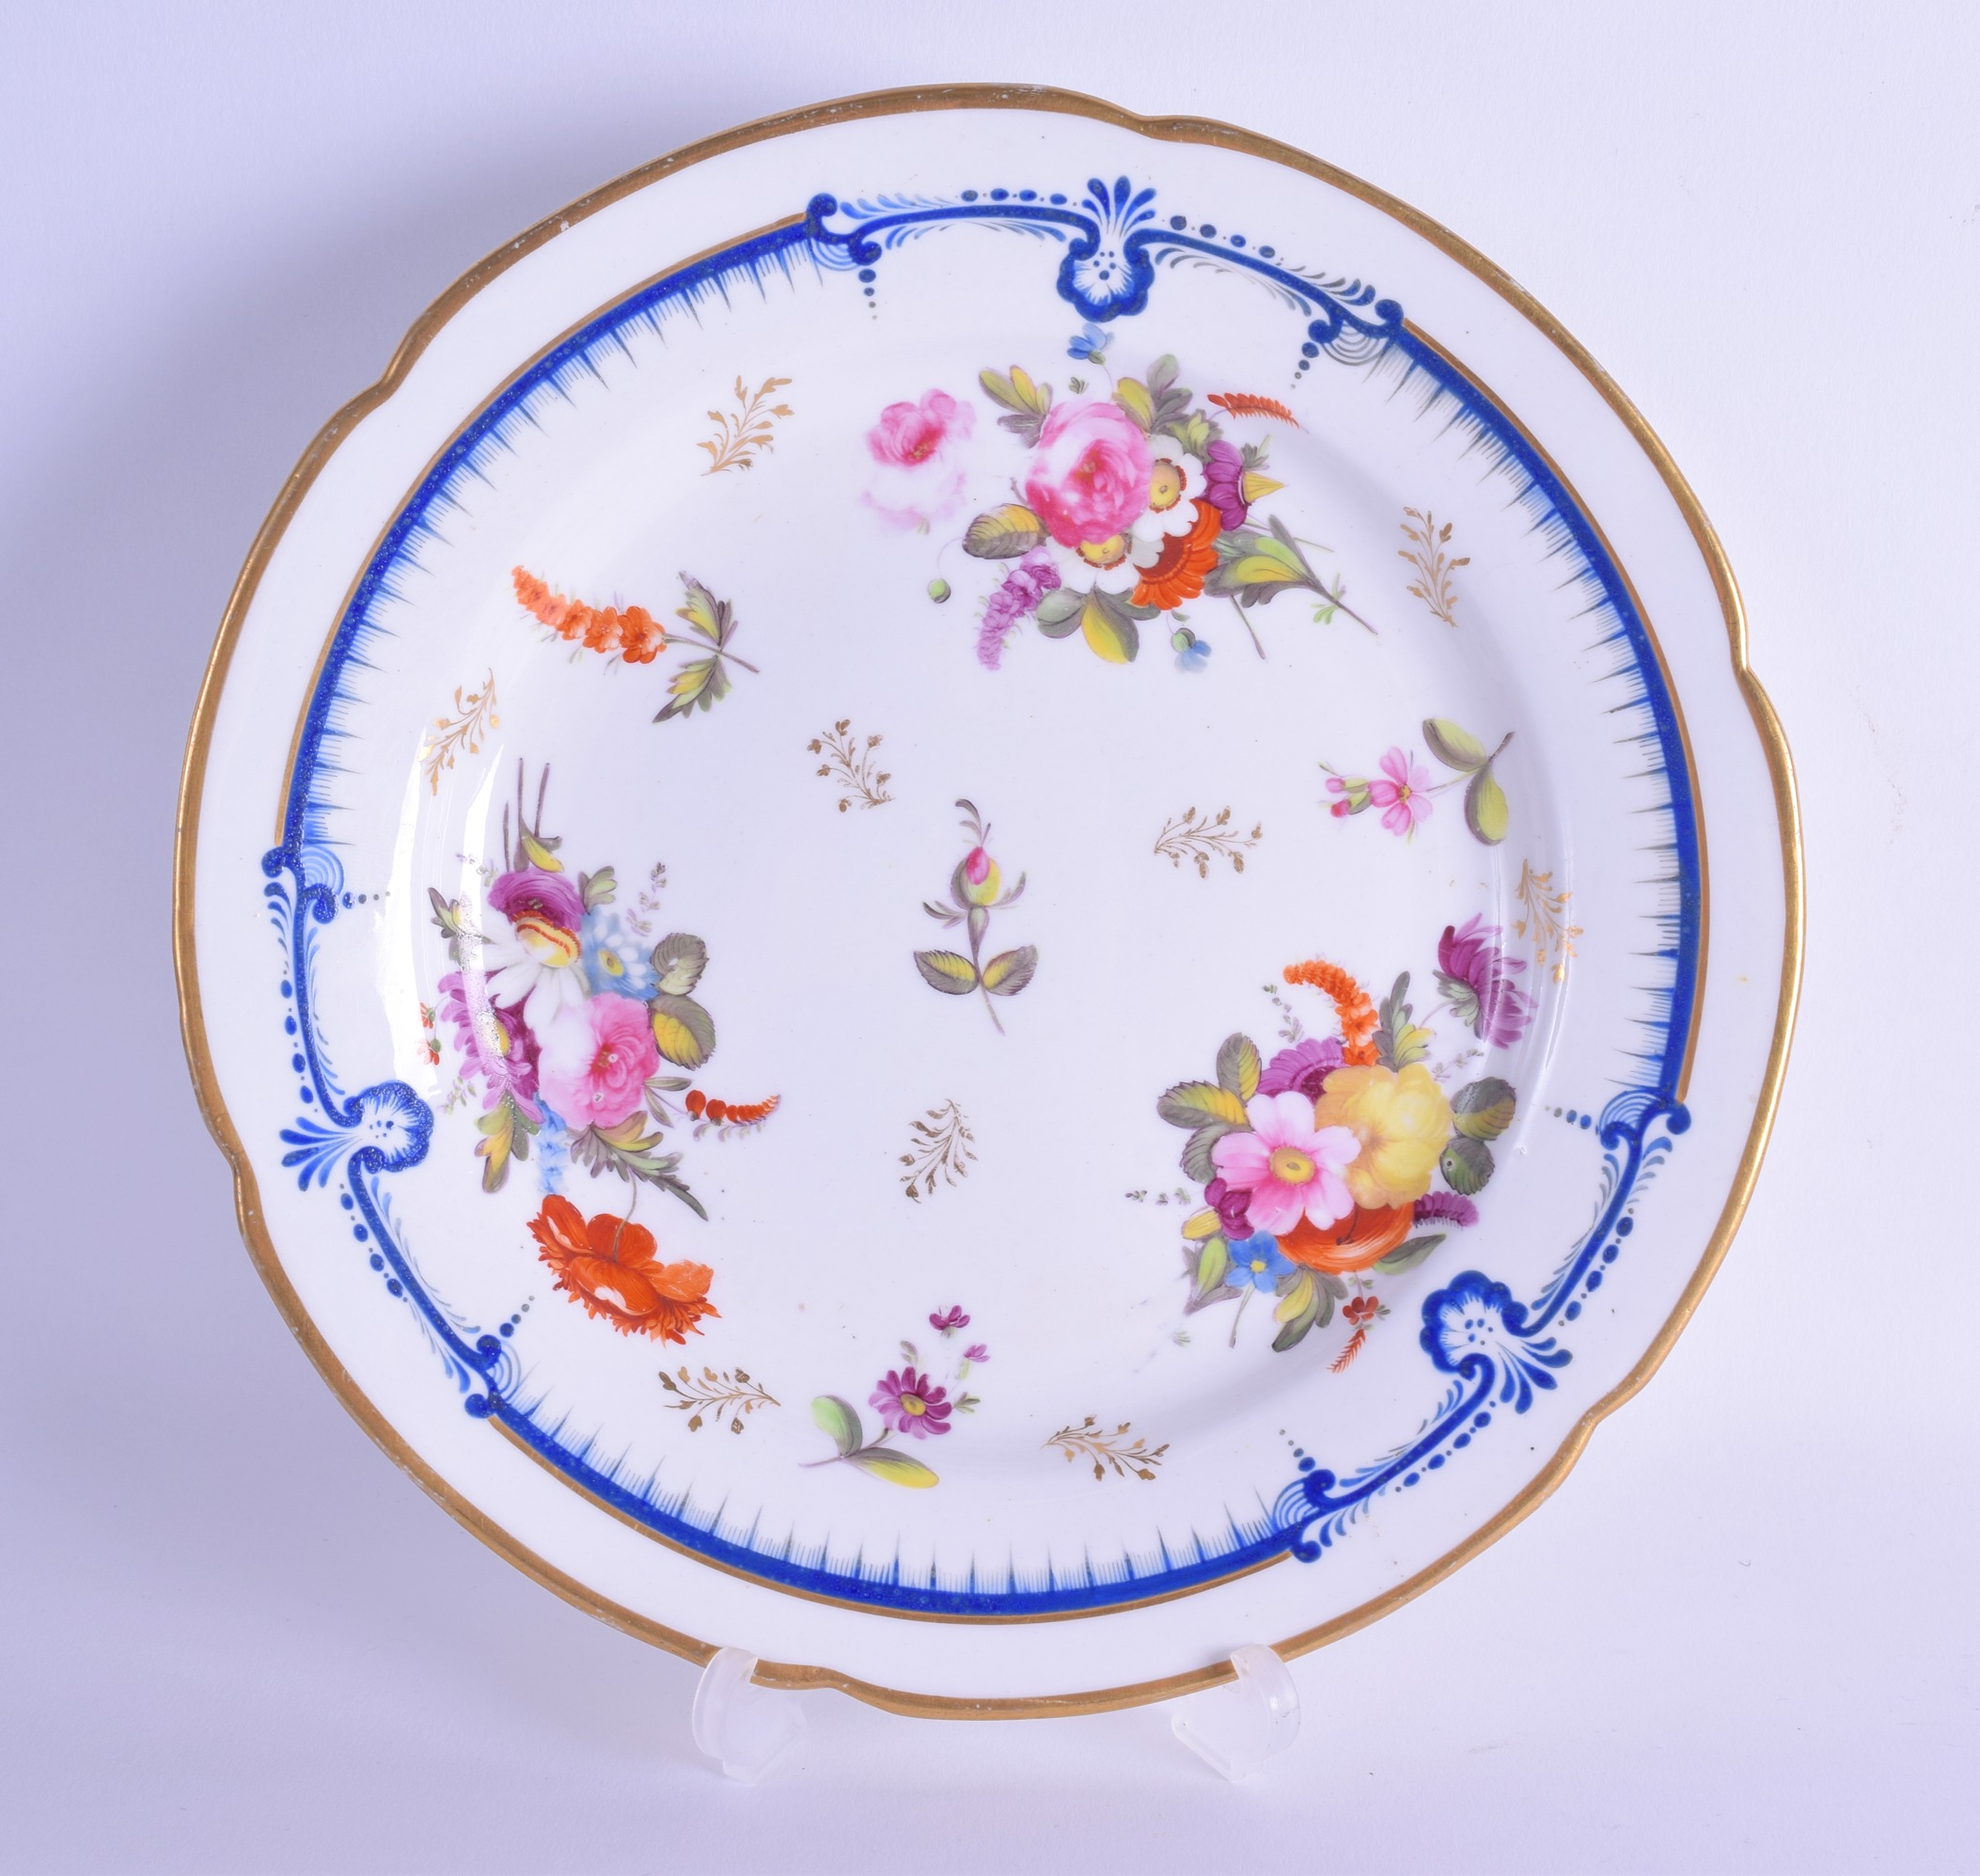 Lot 125 - Early 19th c. Coalport plate painted in Derby style with scattered floral sprays under a dry blue